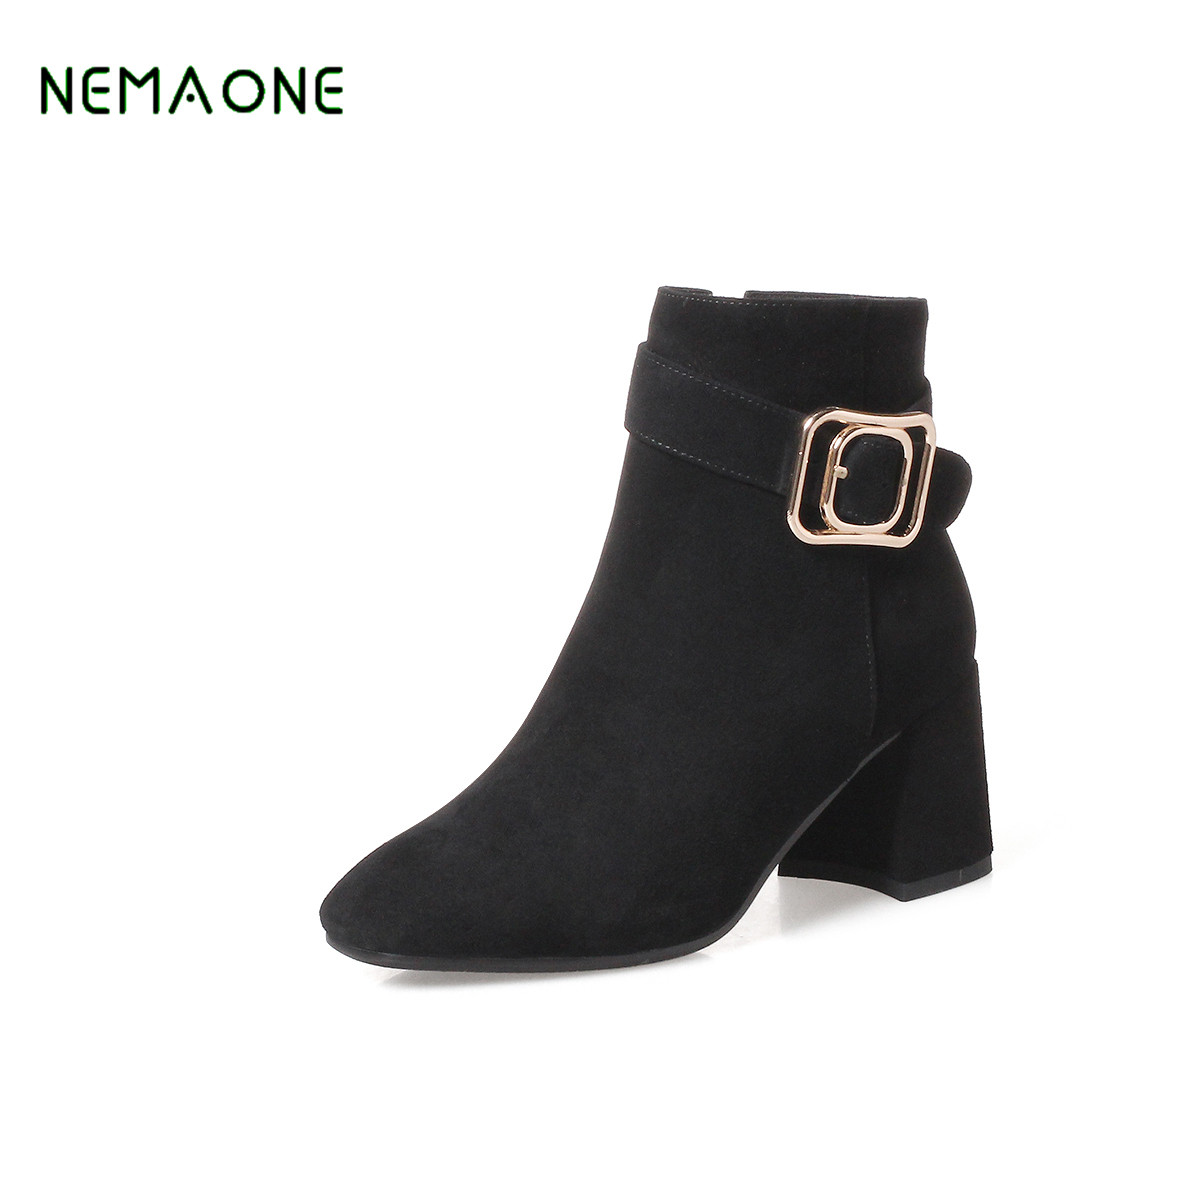 NEMAONE NEW Women Winter Shoes Genuine Leather fashion Boots Brand Women Shoes High Quality Ankle Boots High Heel whensinger 2017 new women fashion boots genuine leather fashion shoes rubber sole hands sewing 2 color 7126